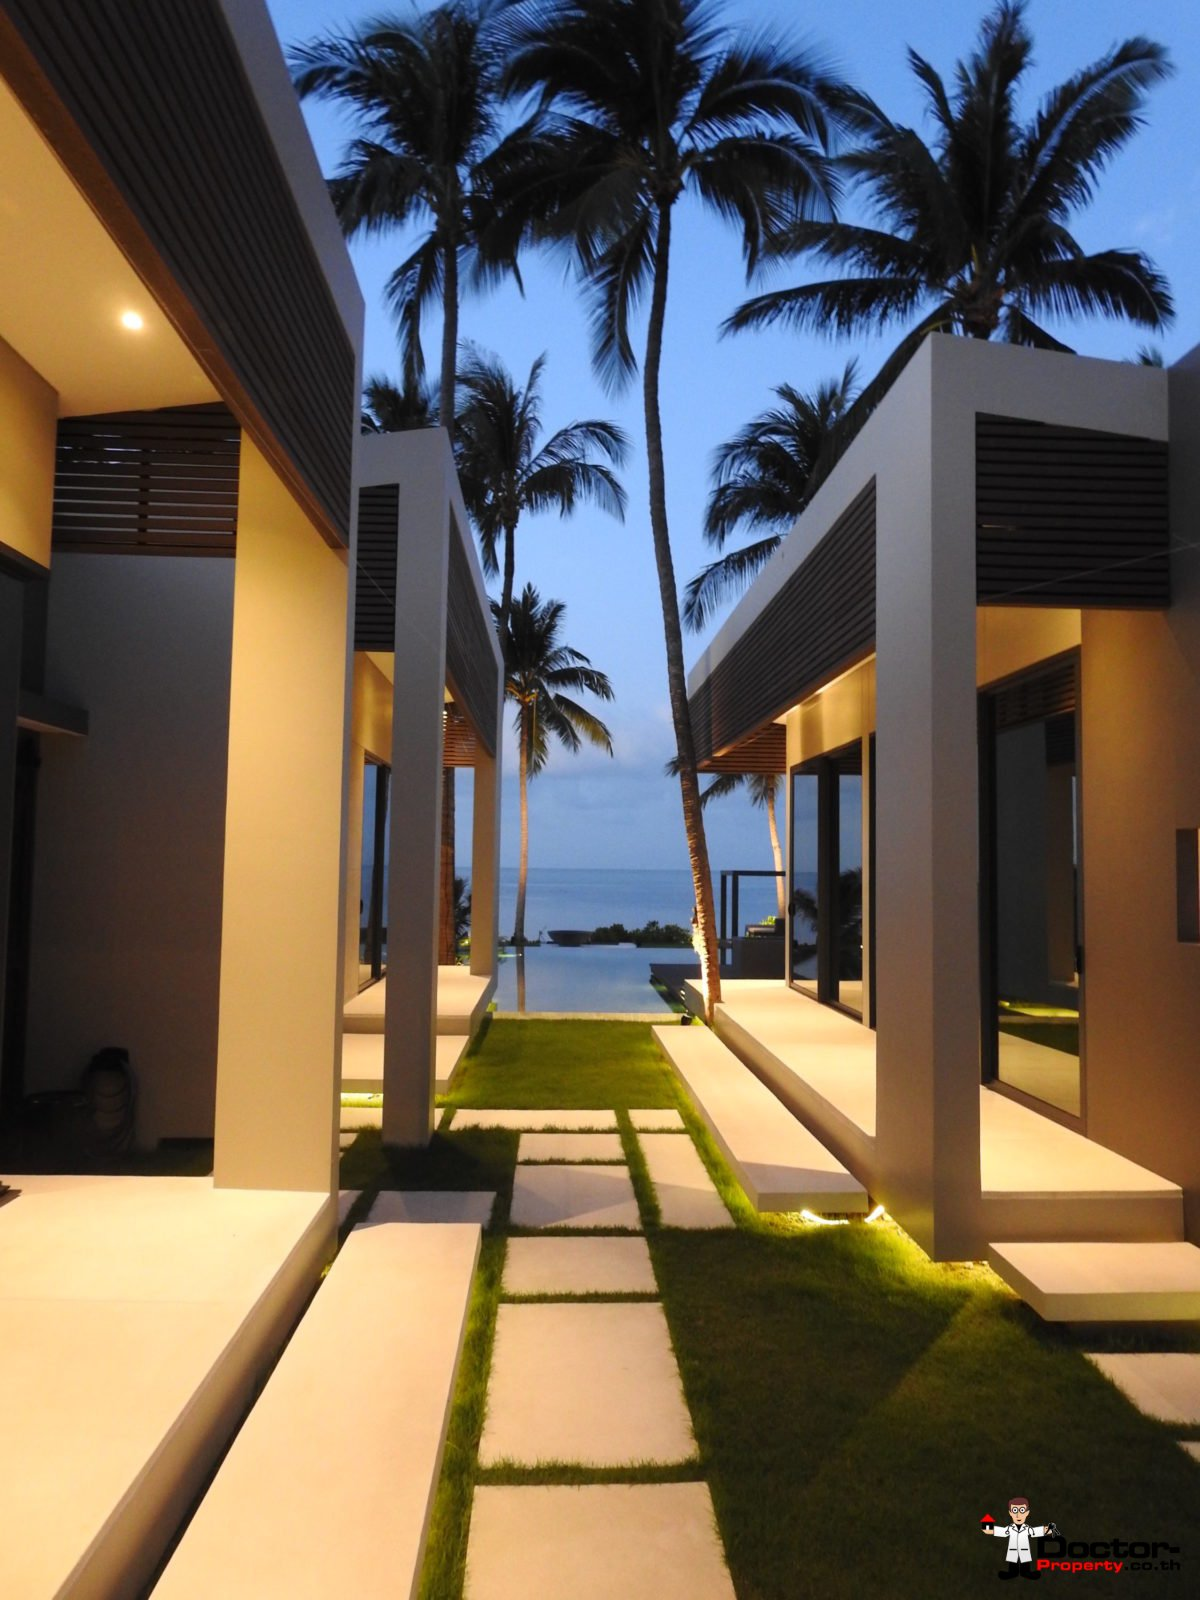 Beachfront Luxury 3 Bedroom Villa in Bang Por - Koh Samui - for sale 19